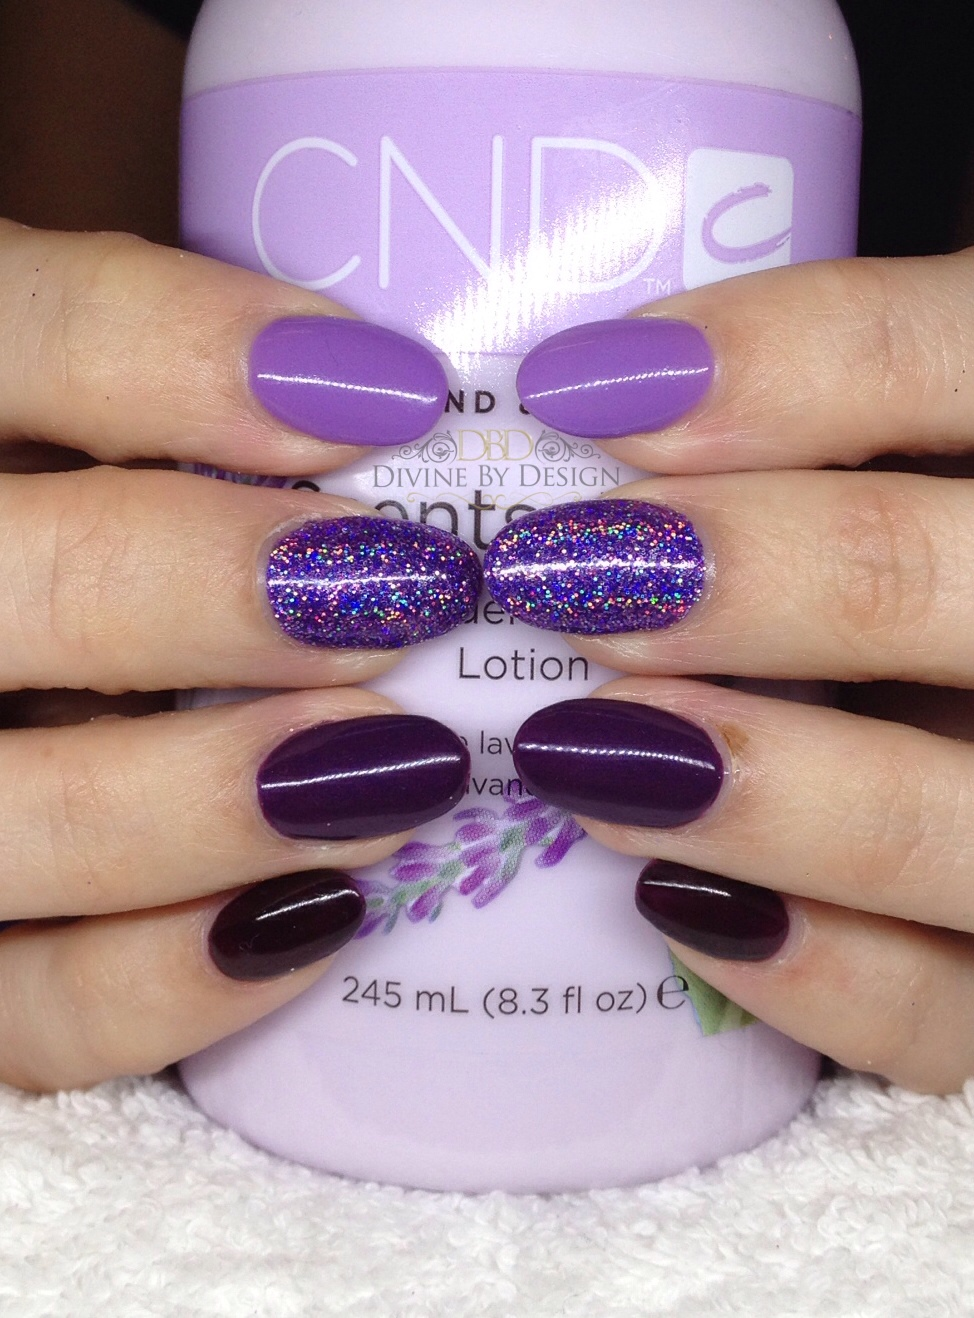 Liquid Powder Gwiz Acrylic Nails Chester